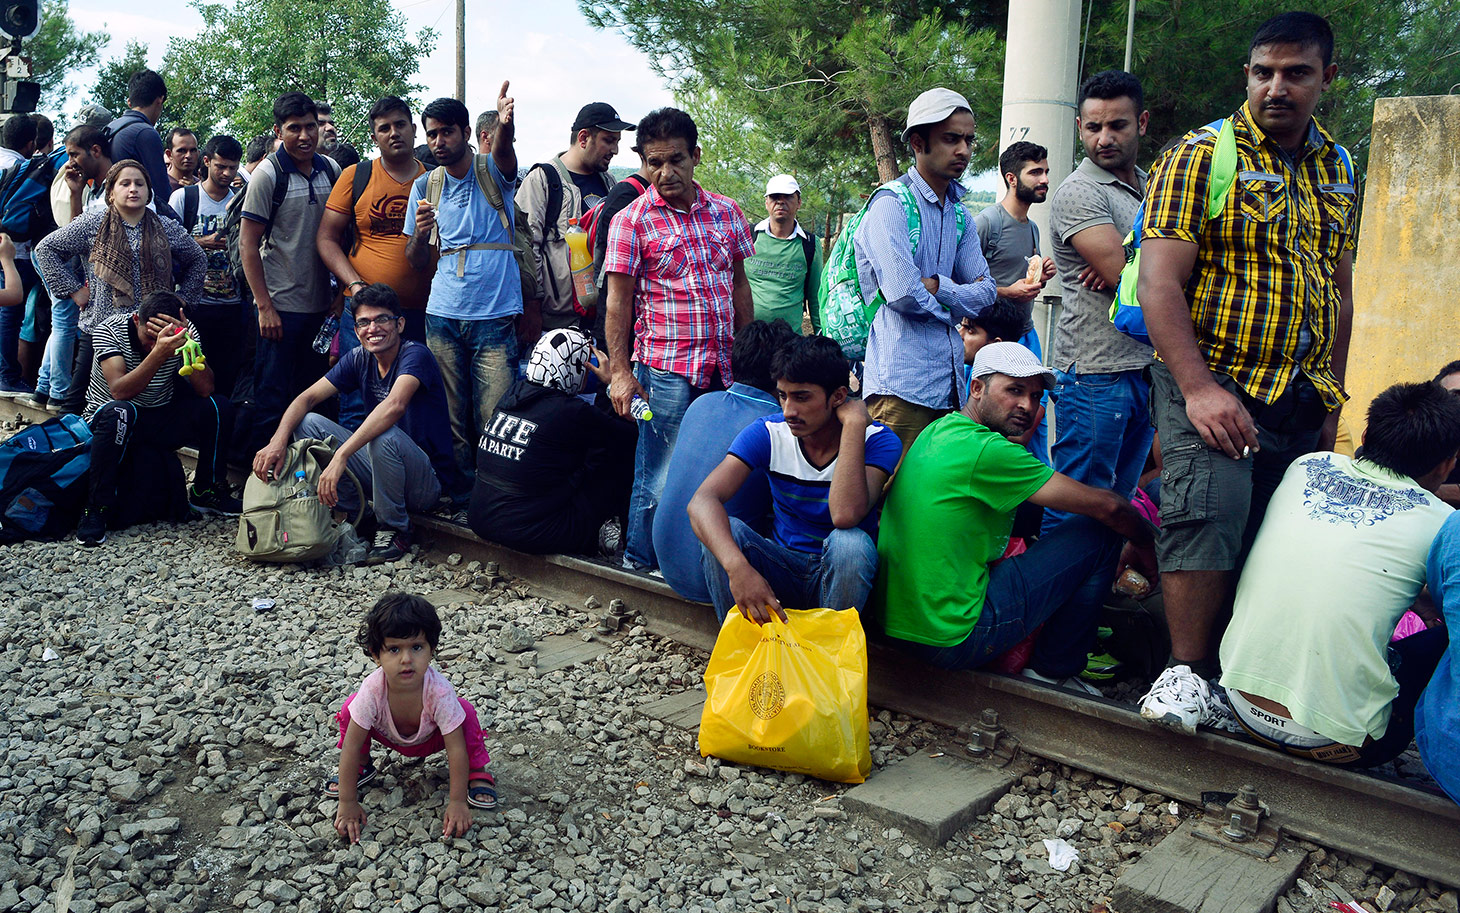 EU confutes it asks Serbia to take refugees permanently